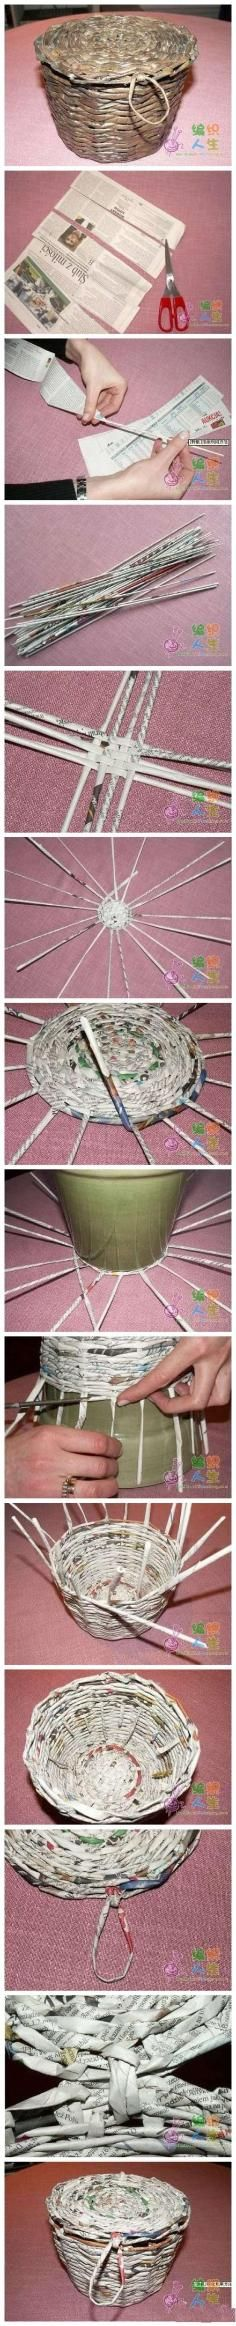 DIY Tutorial  Baskets / DIY How to Make a Basket from Recycled Newspaper - Bead&Cord